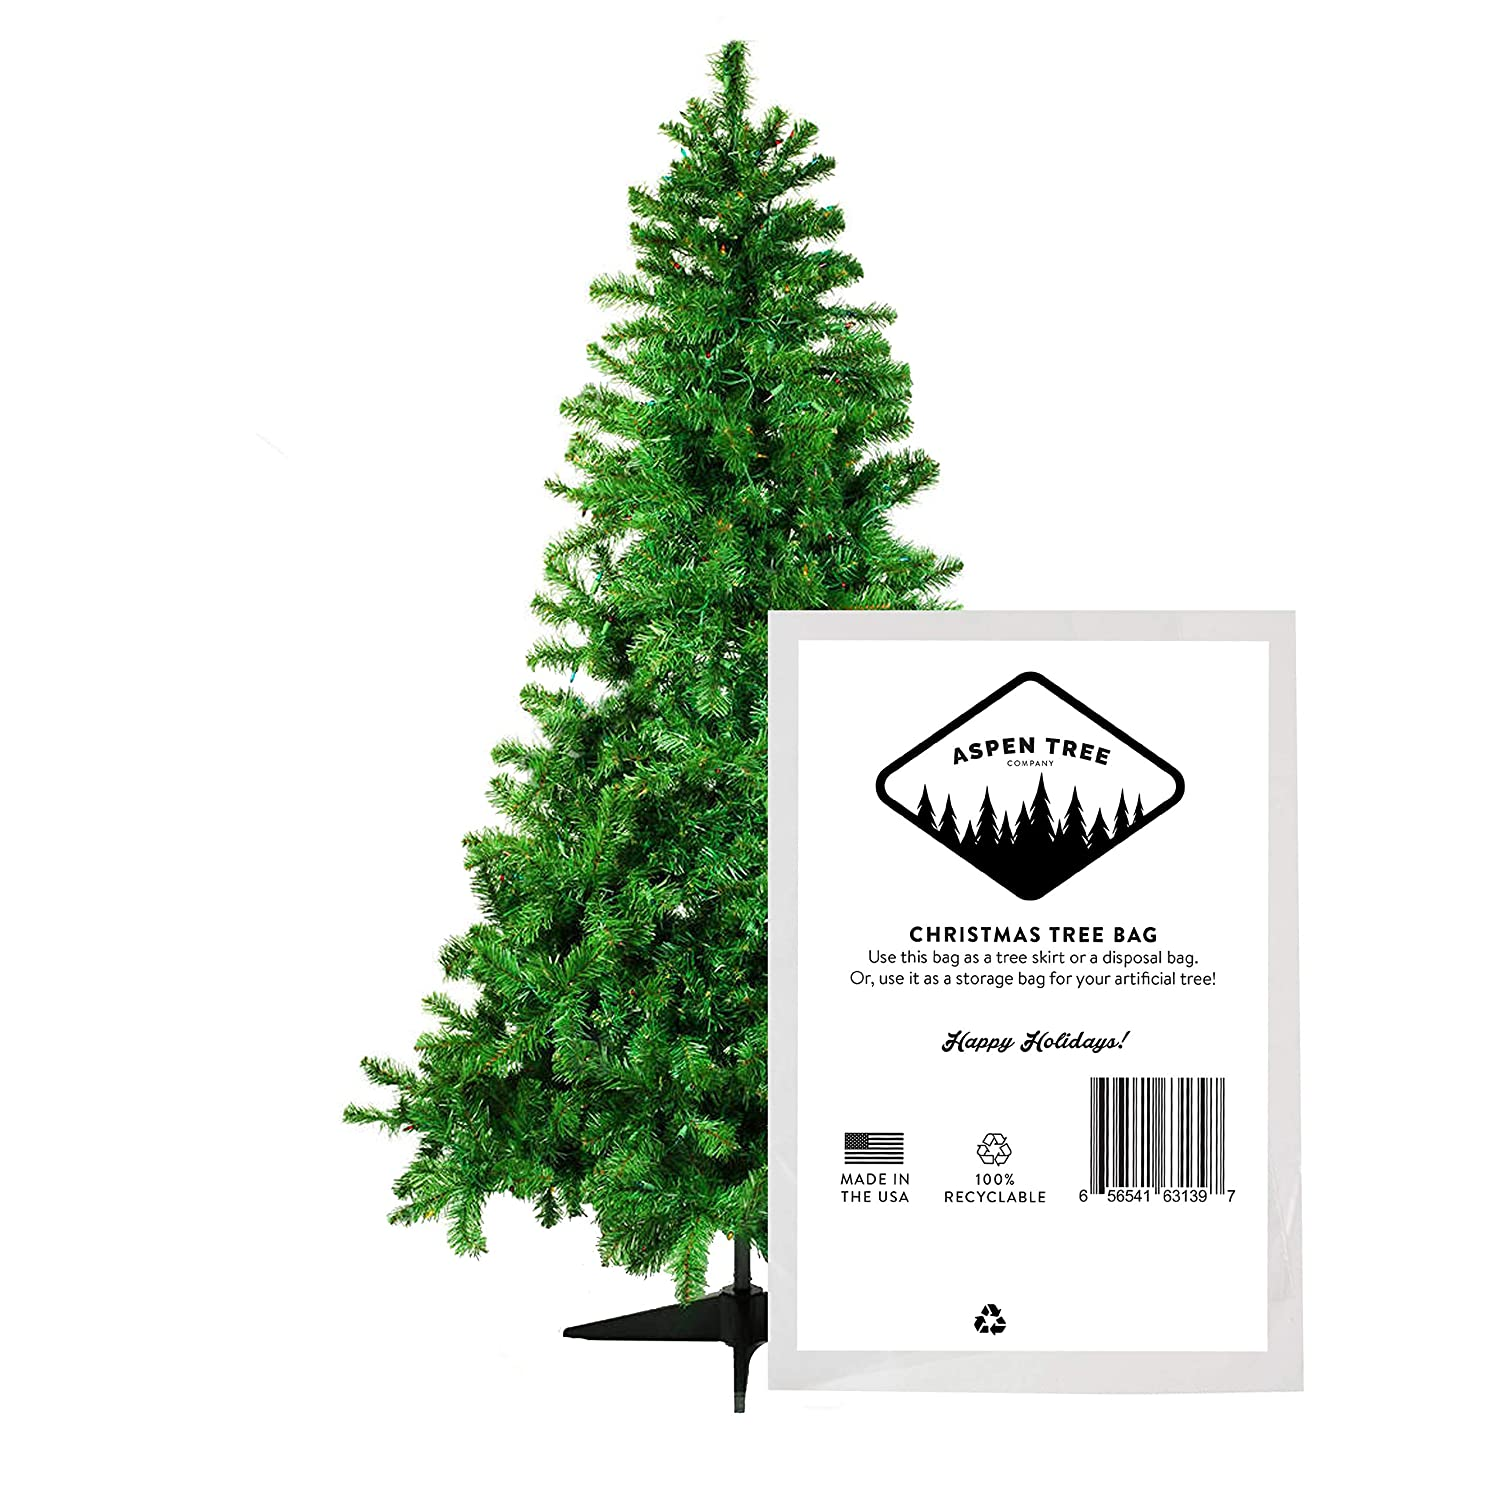 Christmas Tree Disposal.Aspen Tree Co Christmas Tree Disposal Or Storage Bag Fits Up To 9 Foot Tree 12 X 7 5 144 Diameter